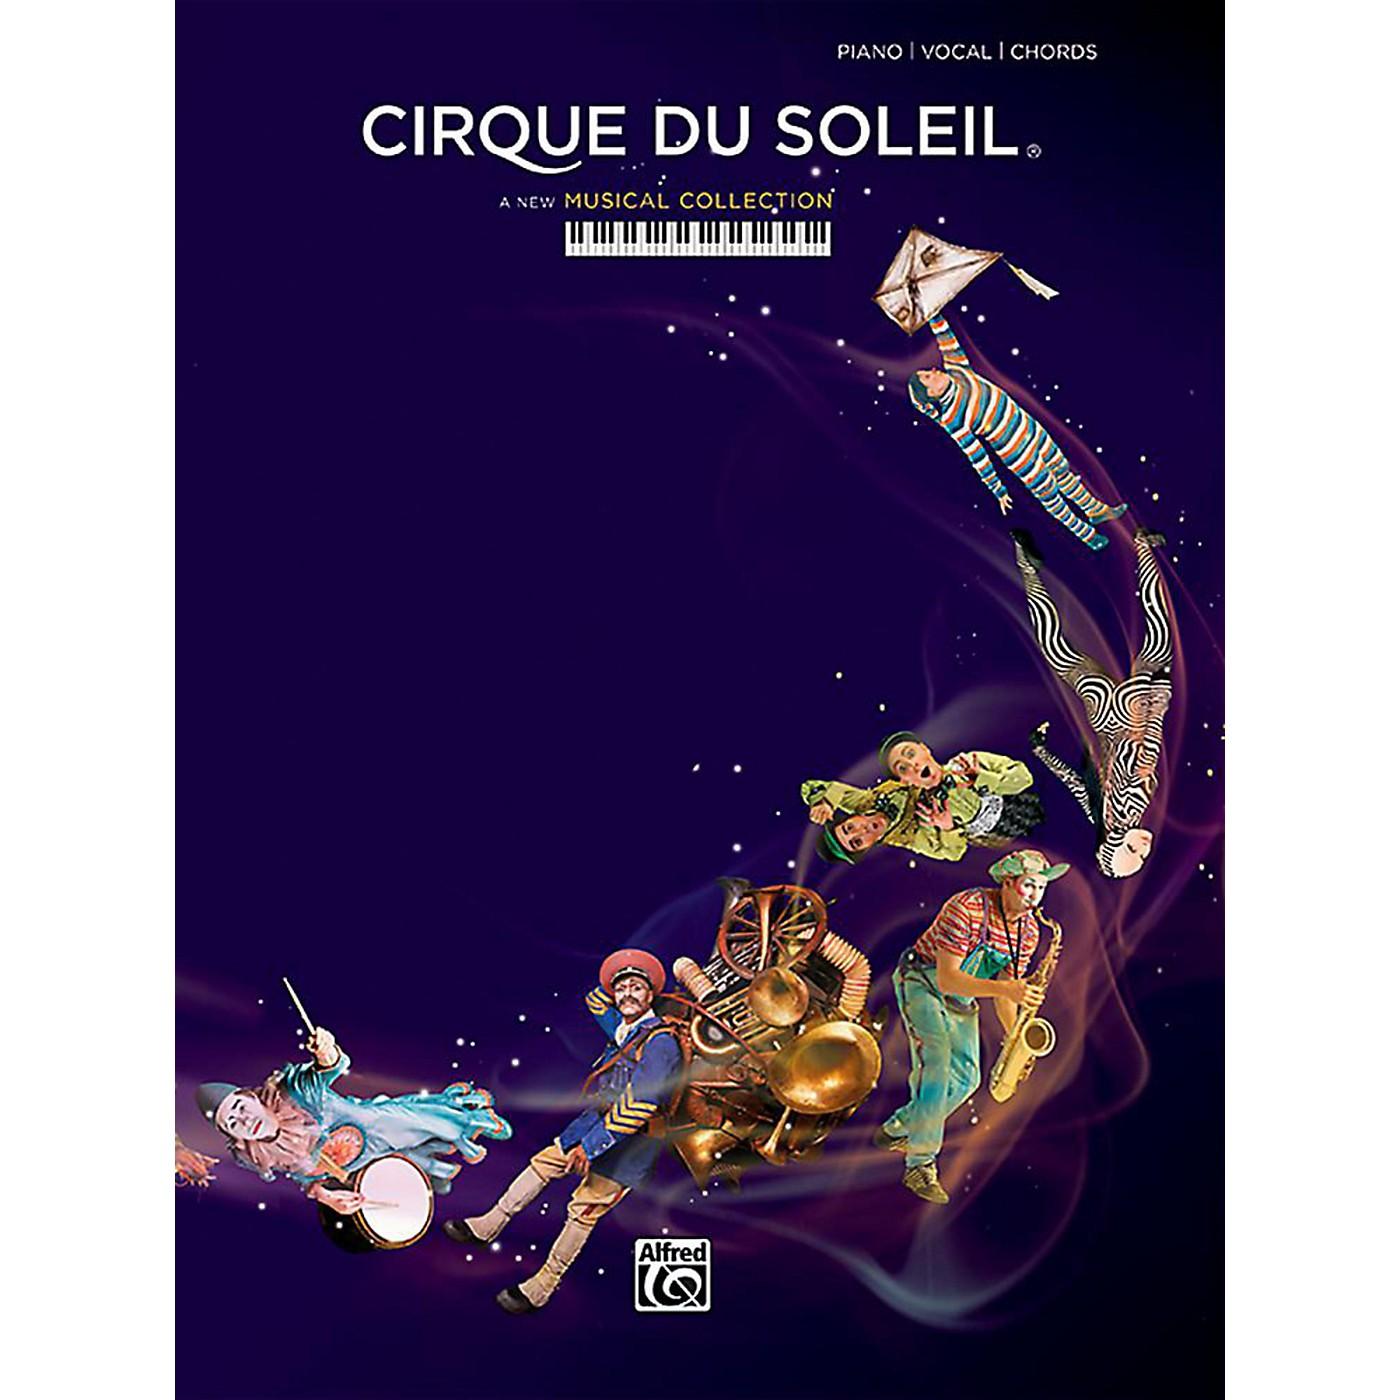 Alfred Cirque du Soleil - Piano/Vocal/Chords Songbook thumbnail